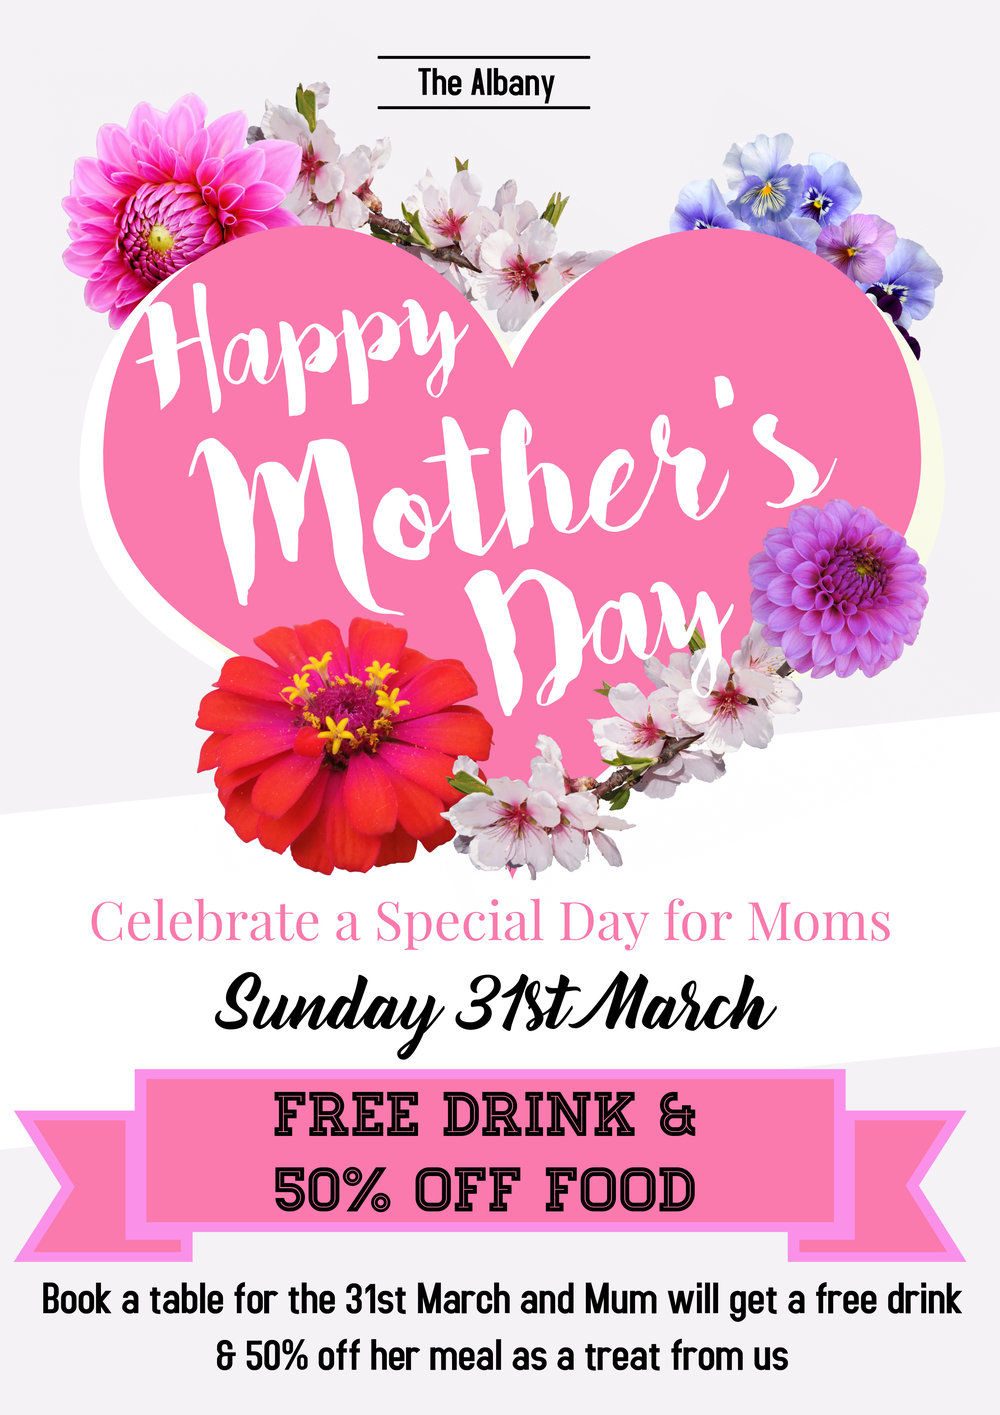 Say thanks to Mum by giving her a treat that she really deserves this Mother's Day. -